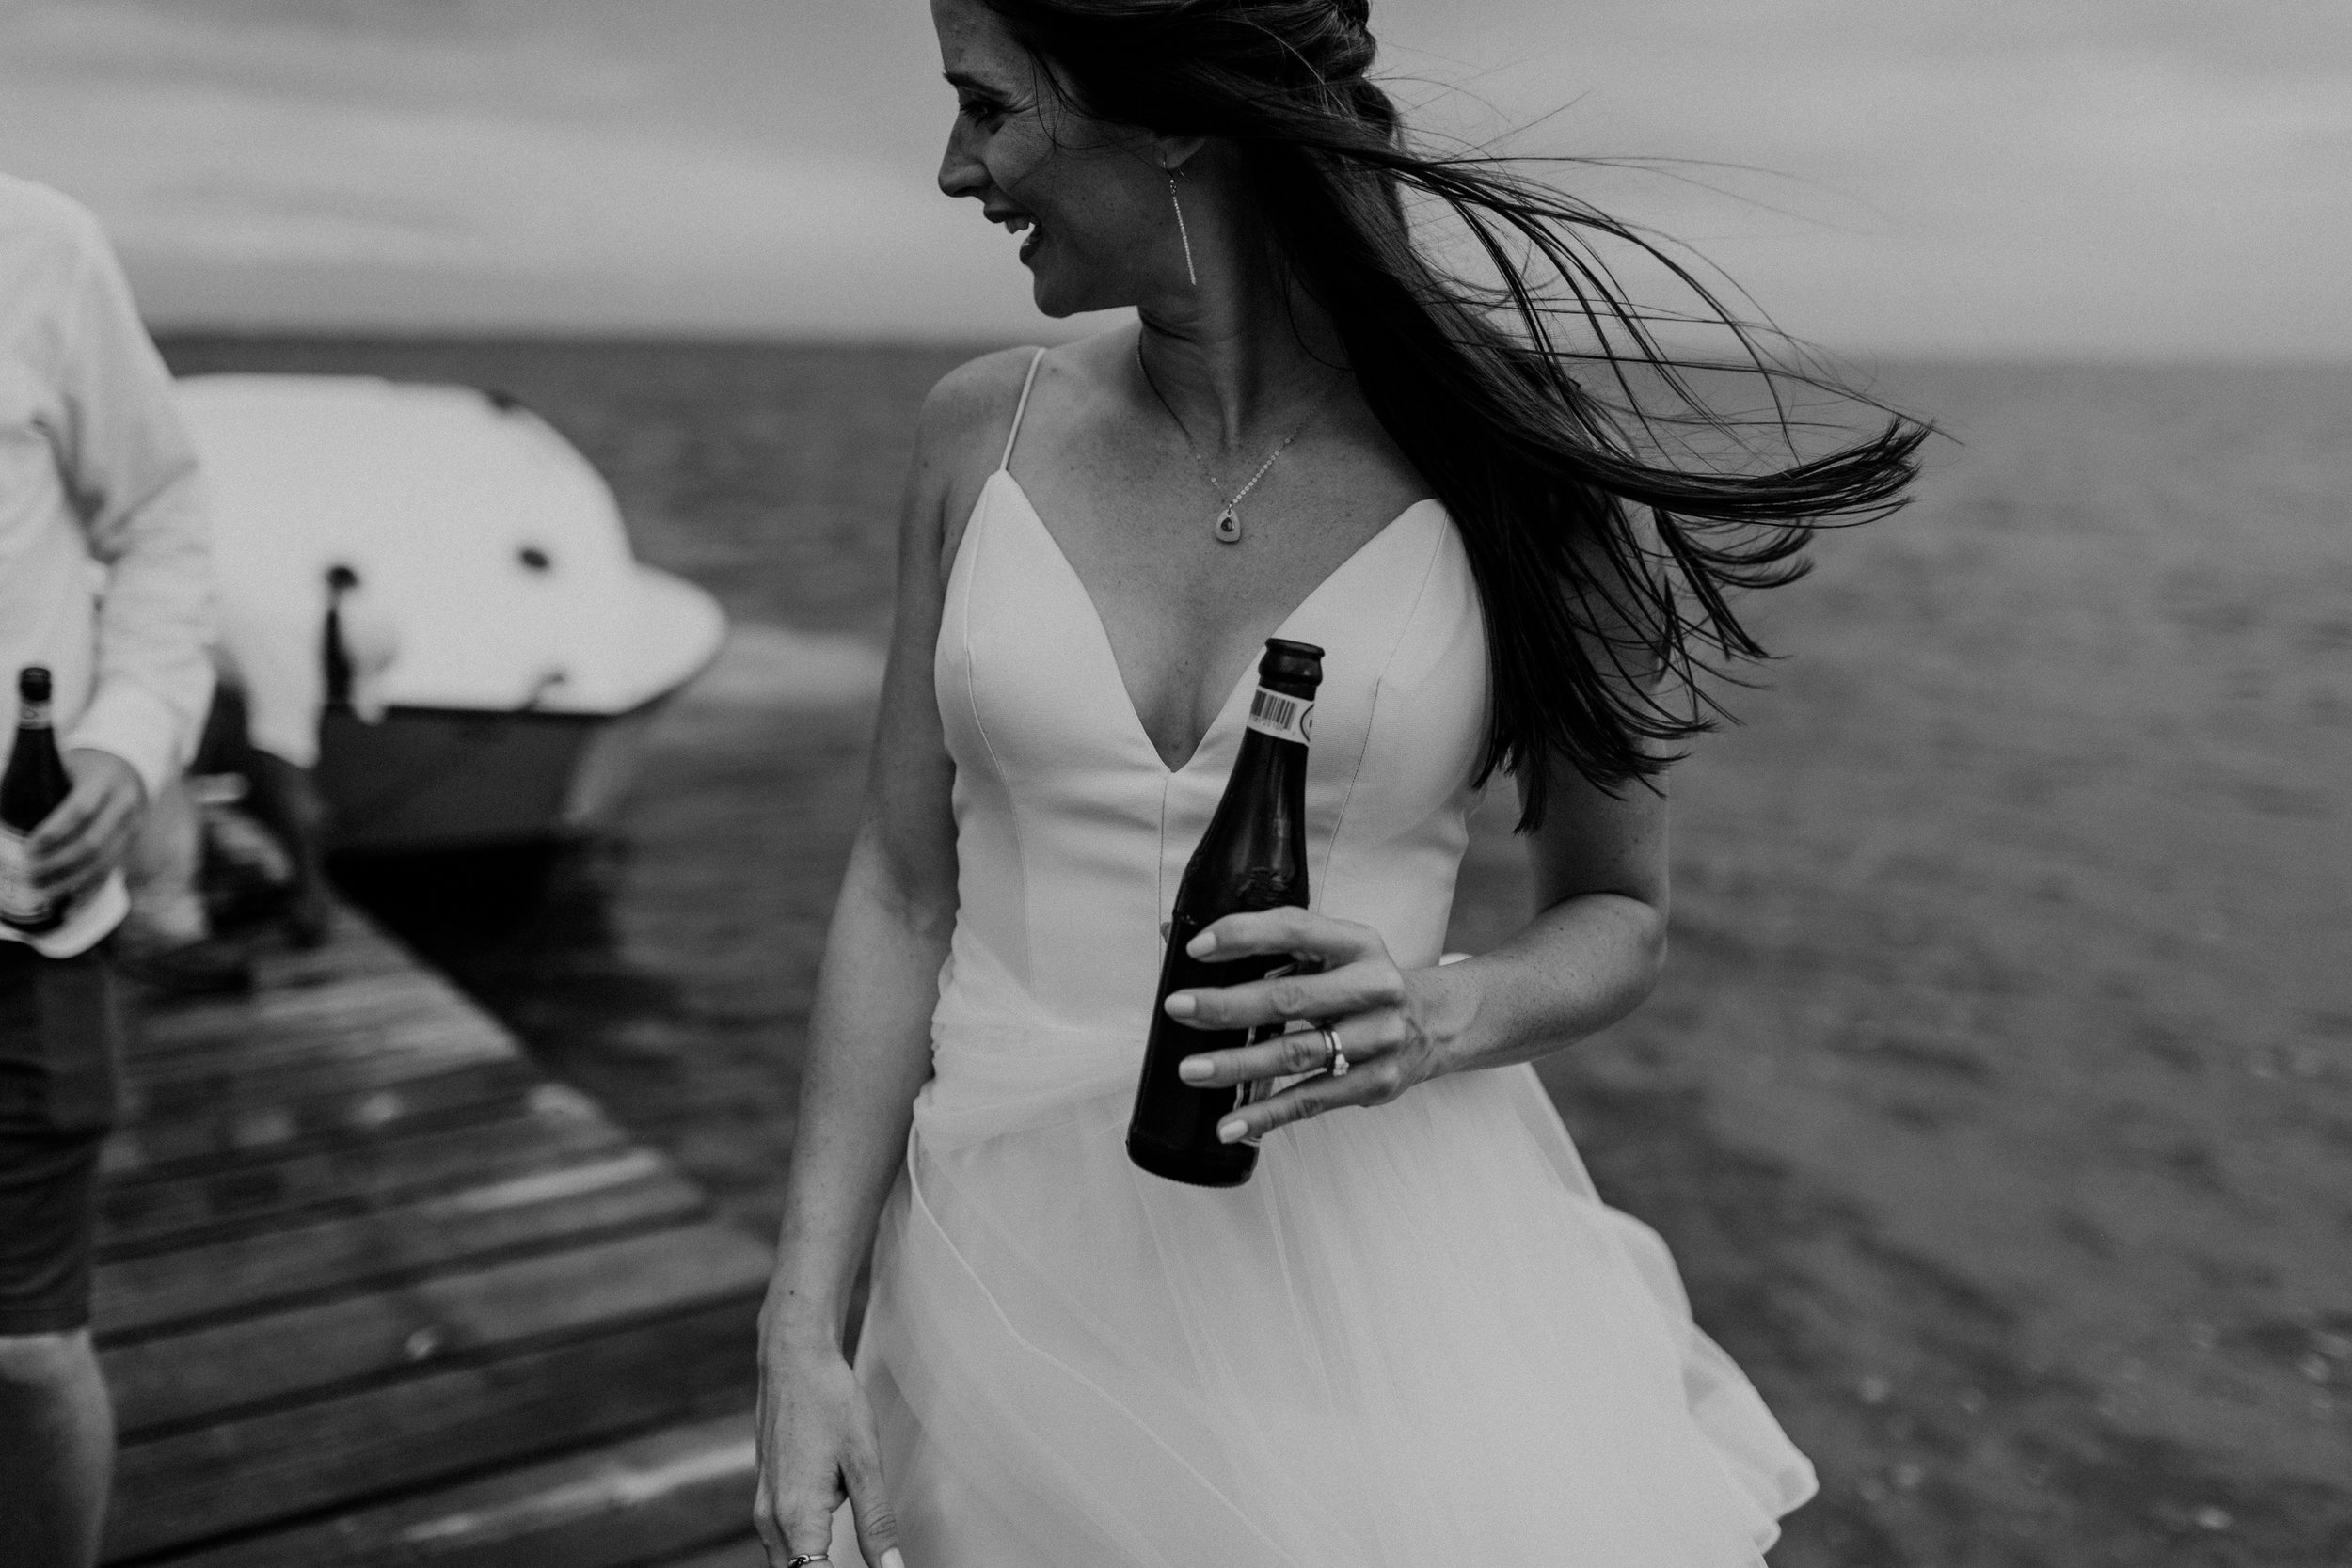 san-pescador-belize-wedding-christinemariephoto-j-k-51.jpg